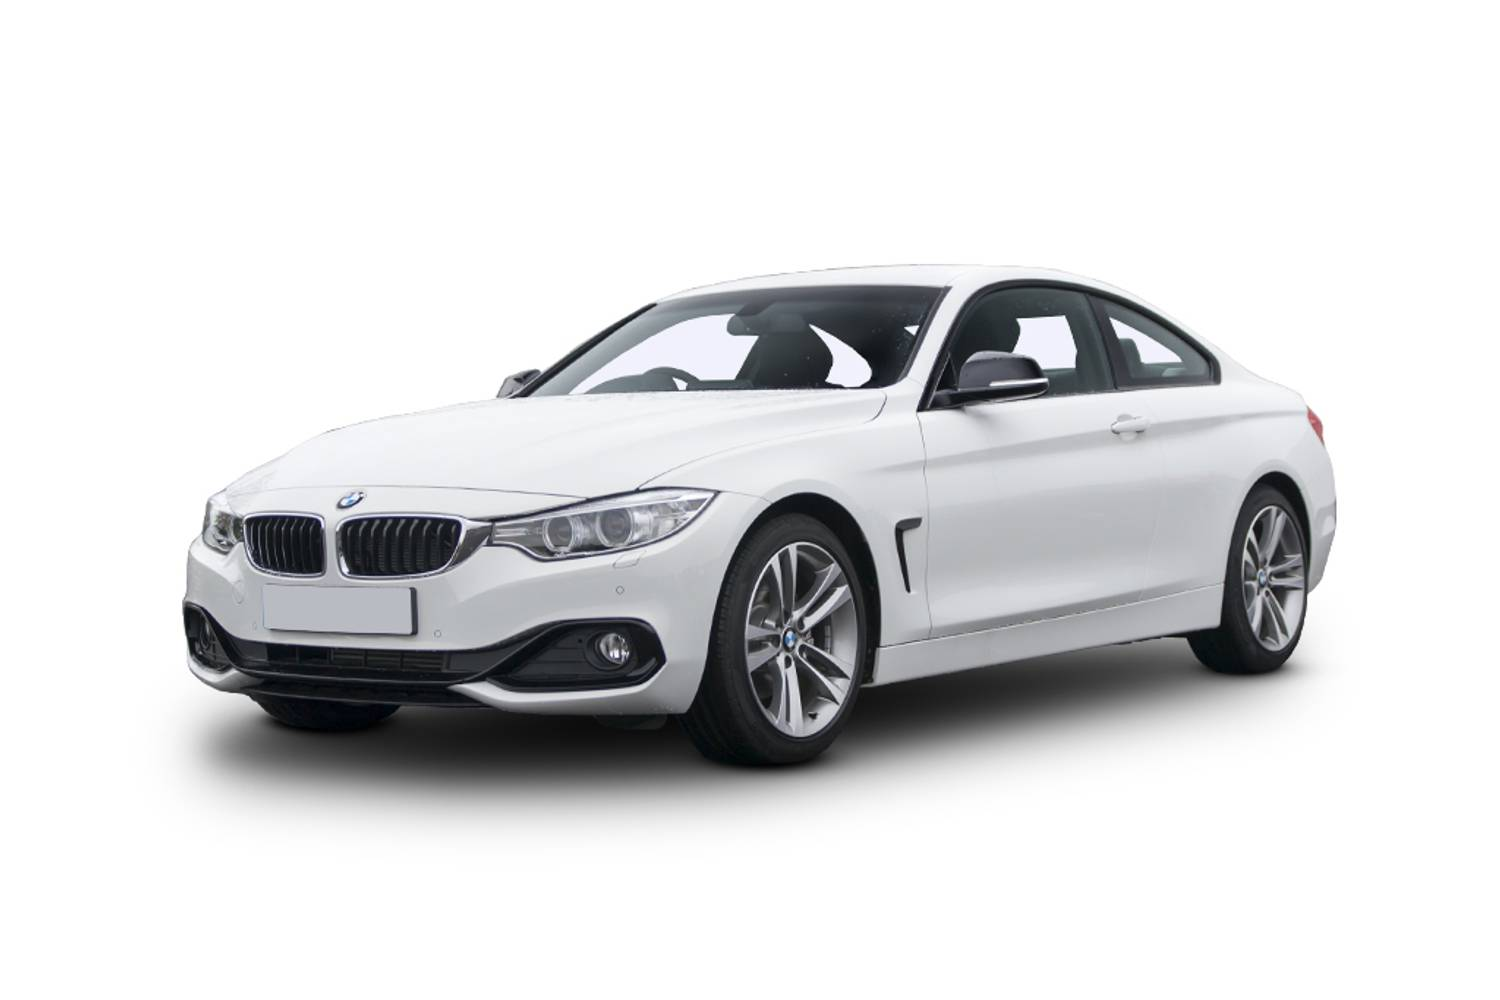 new bmw 4 series coupe 440i m sport 2 door professional. Black Bedroom Furniture Sets. Home Design Ideas